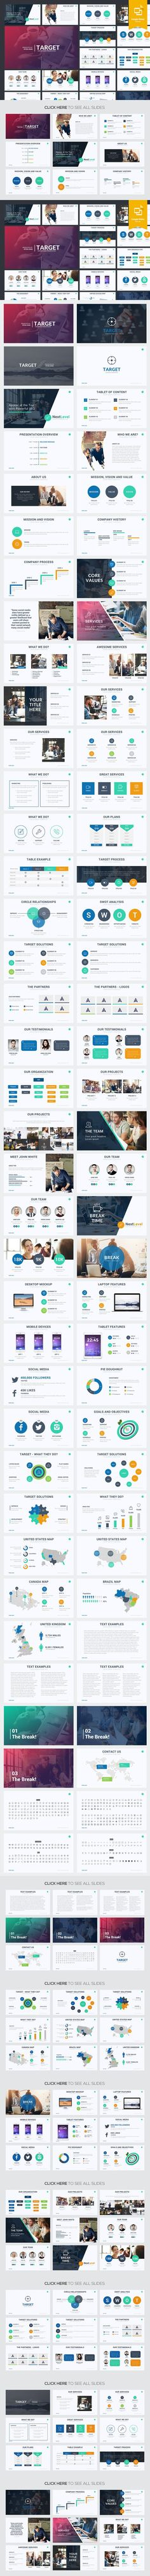 Modern art powerpoint presentation template business powerpoint target google slides template toneelgroepblik